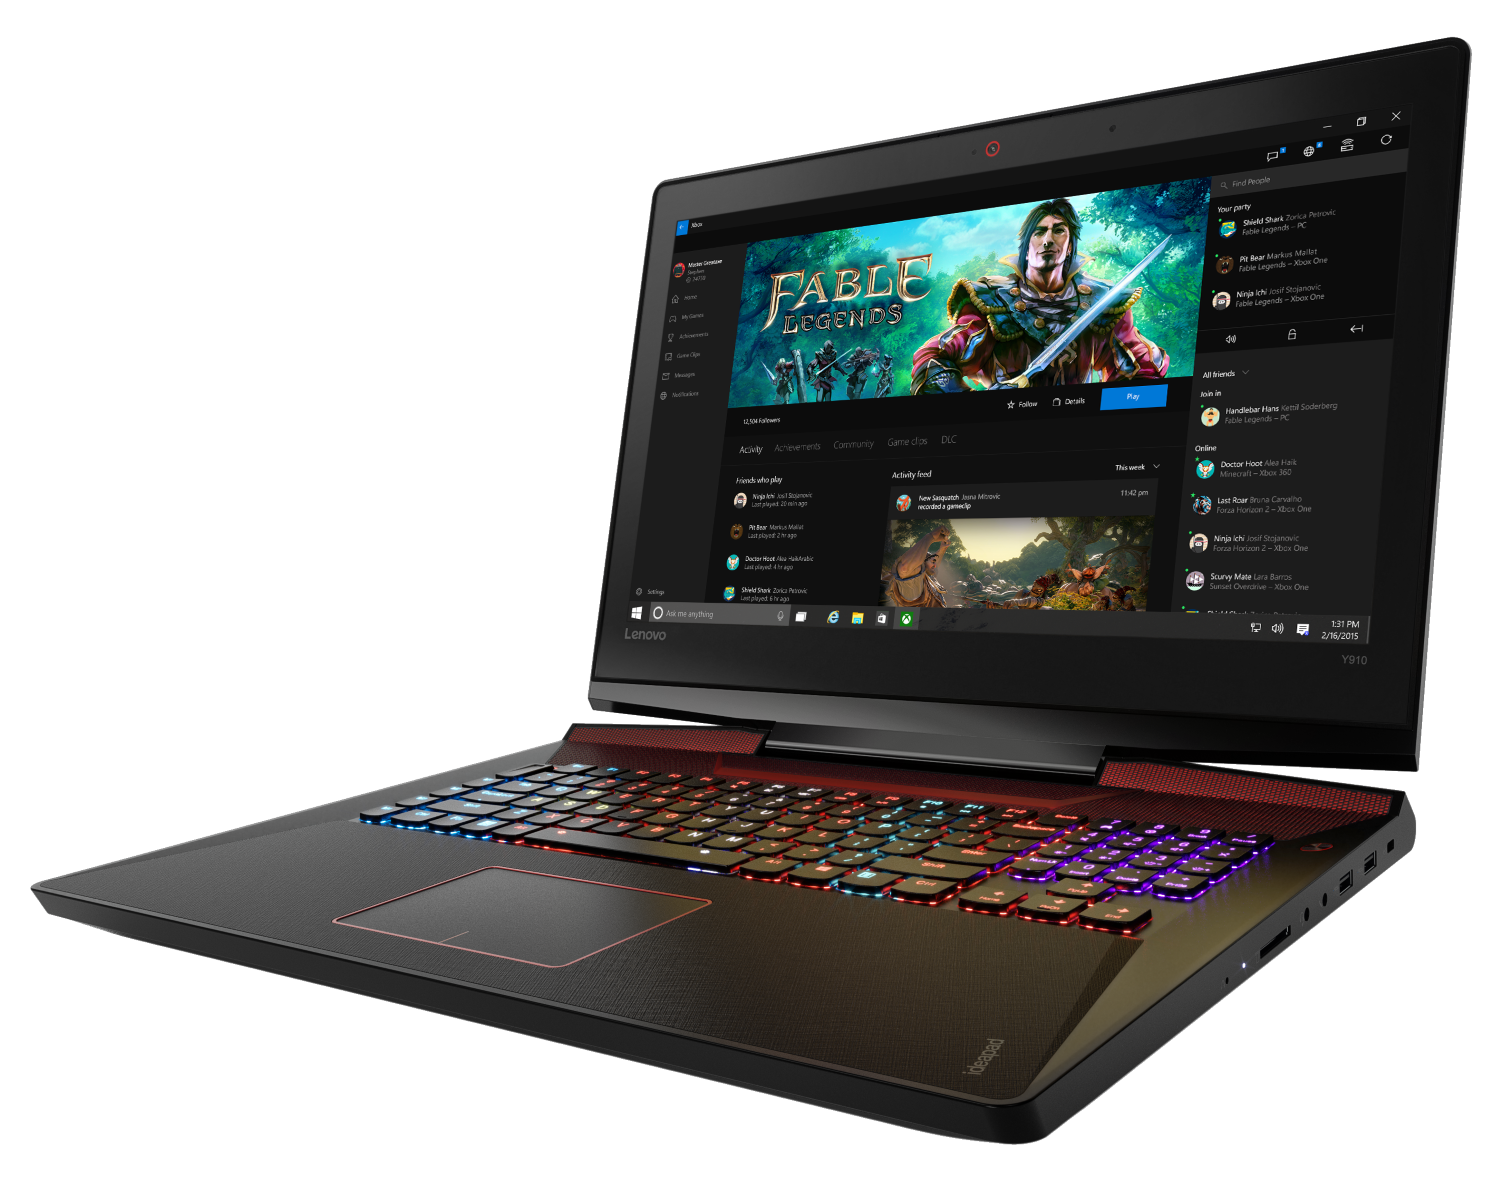 lenovo y laptop gaming